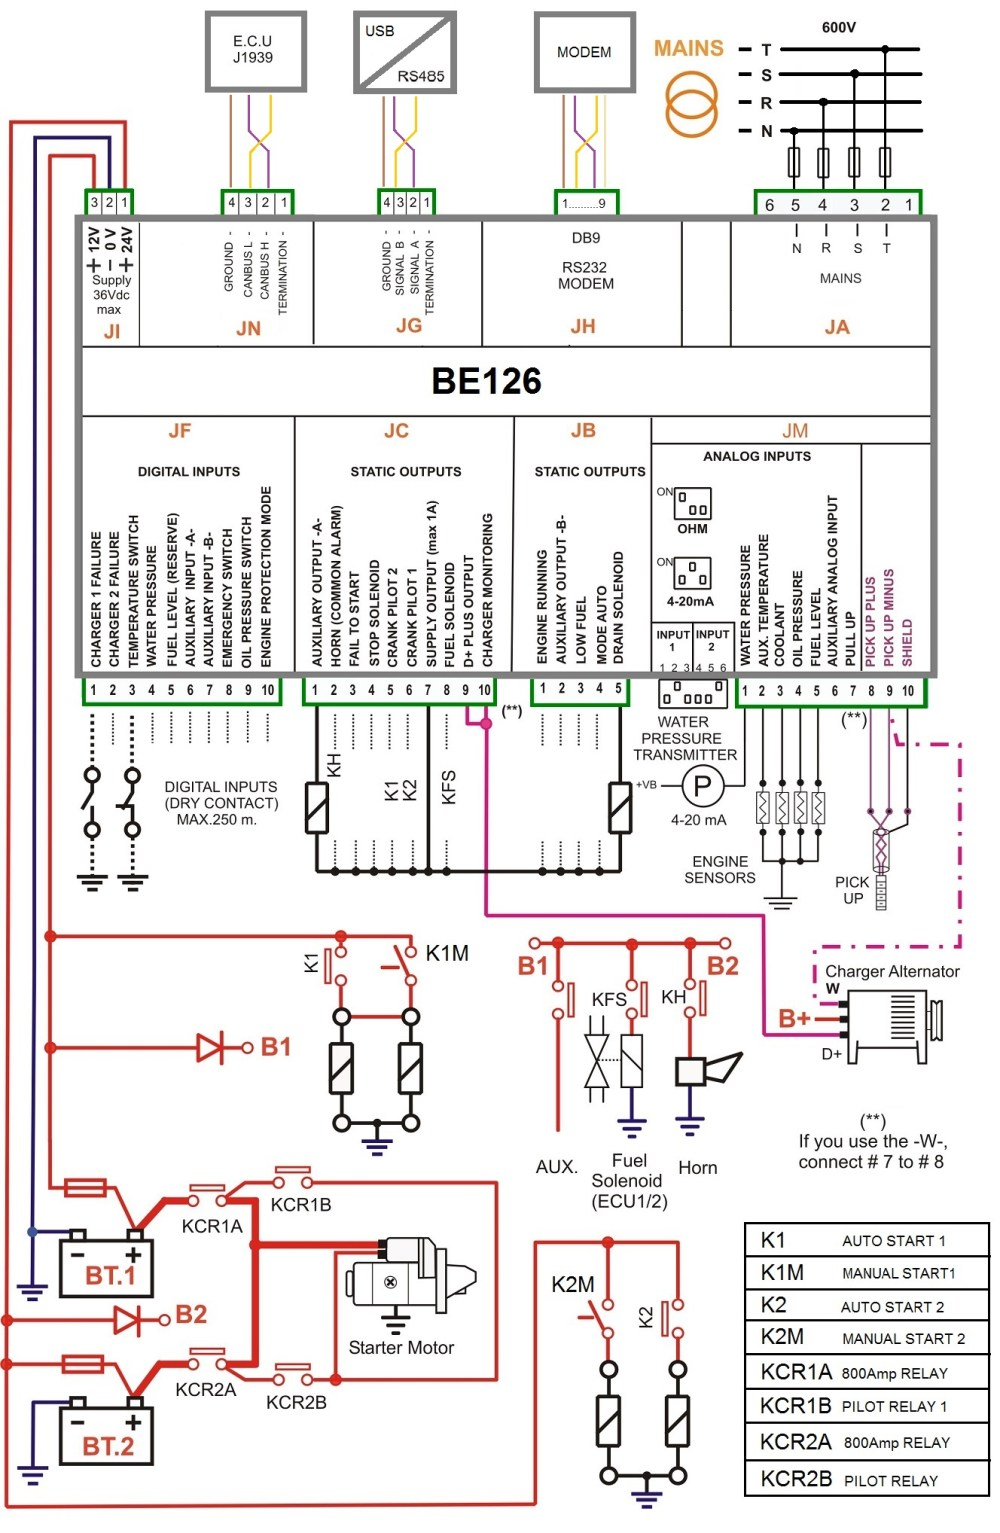 medium resolution of fire pump controller wiring diagram genset controller versamatic pump diagram fire pump controller wiring diagram